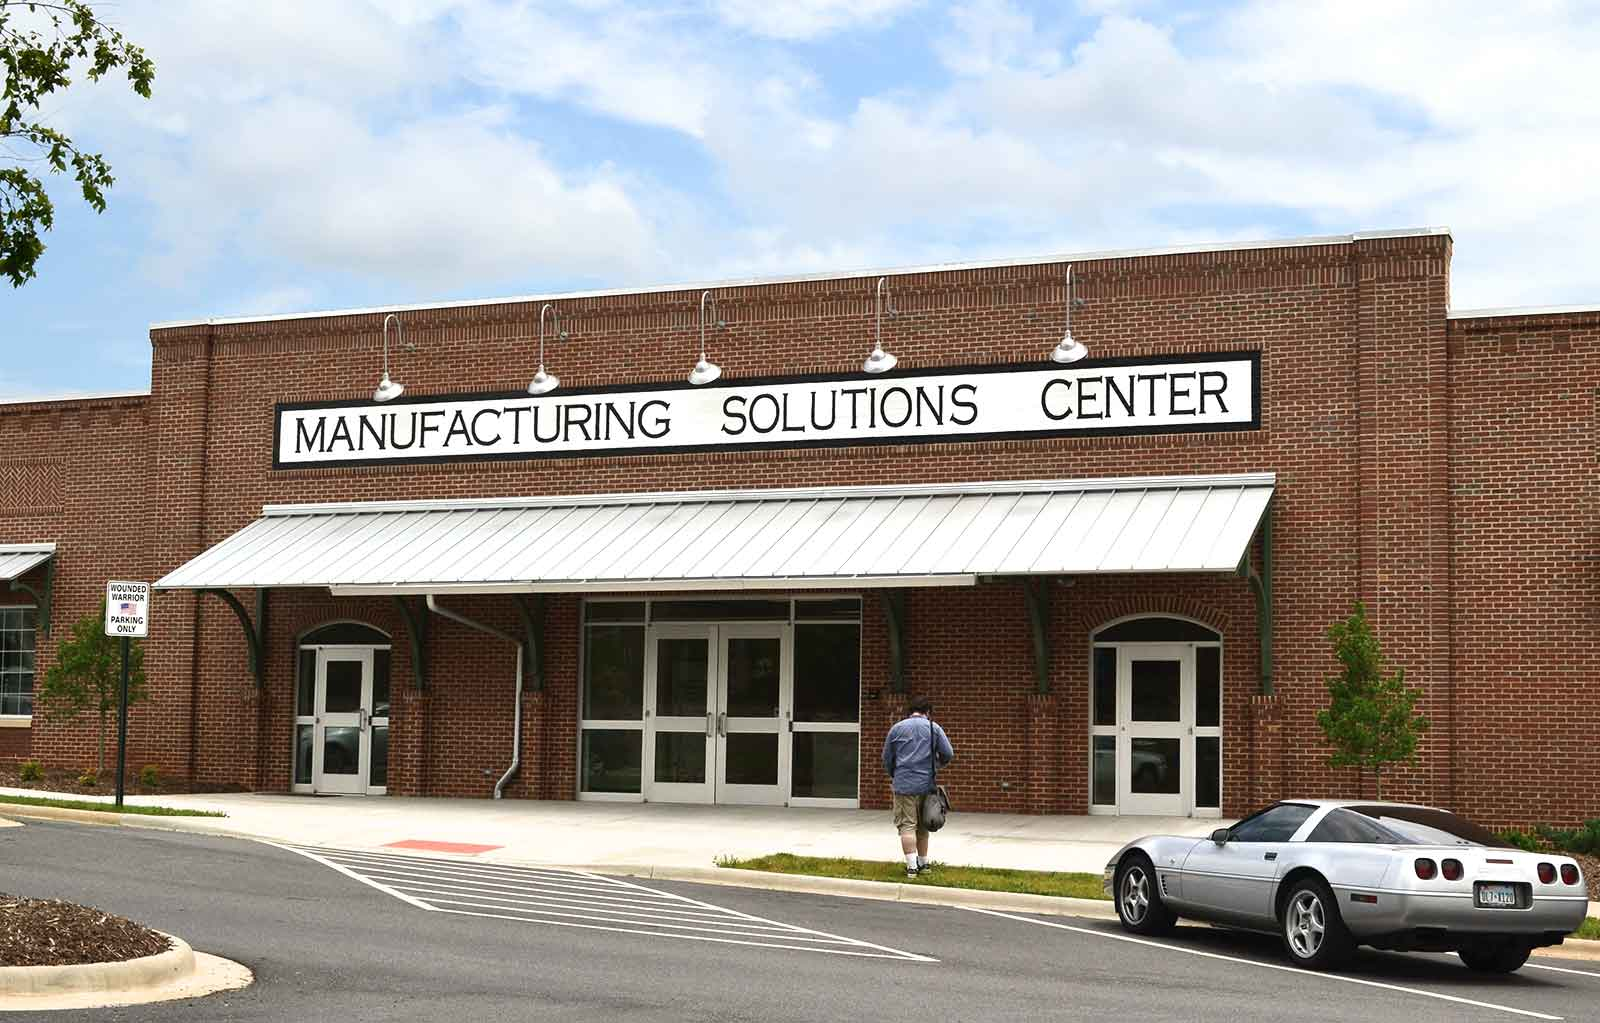 Adult STEAM: Manufacturing Solutions Center